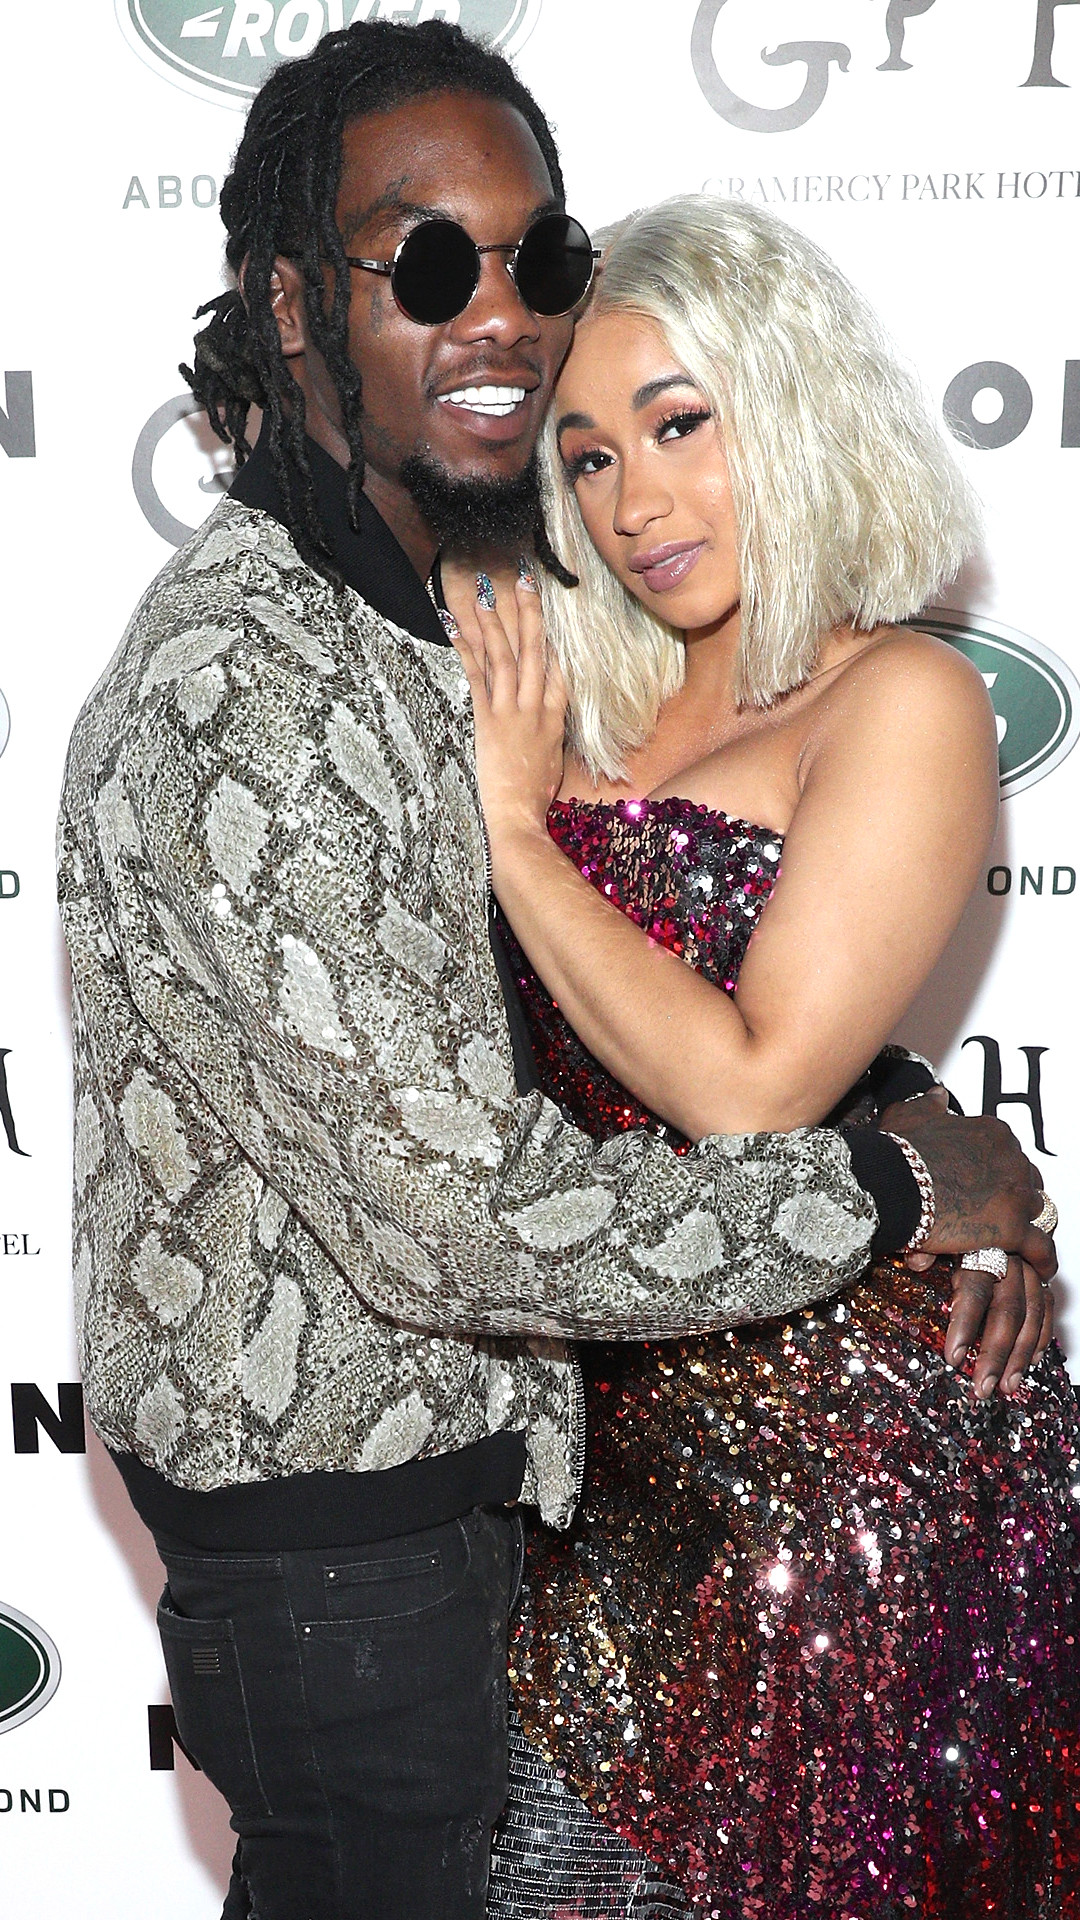 Cardi B Is Pregnant, Expecting First Child With Fiancé Offset | E! News